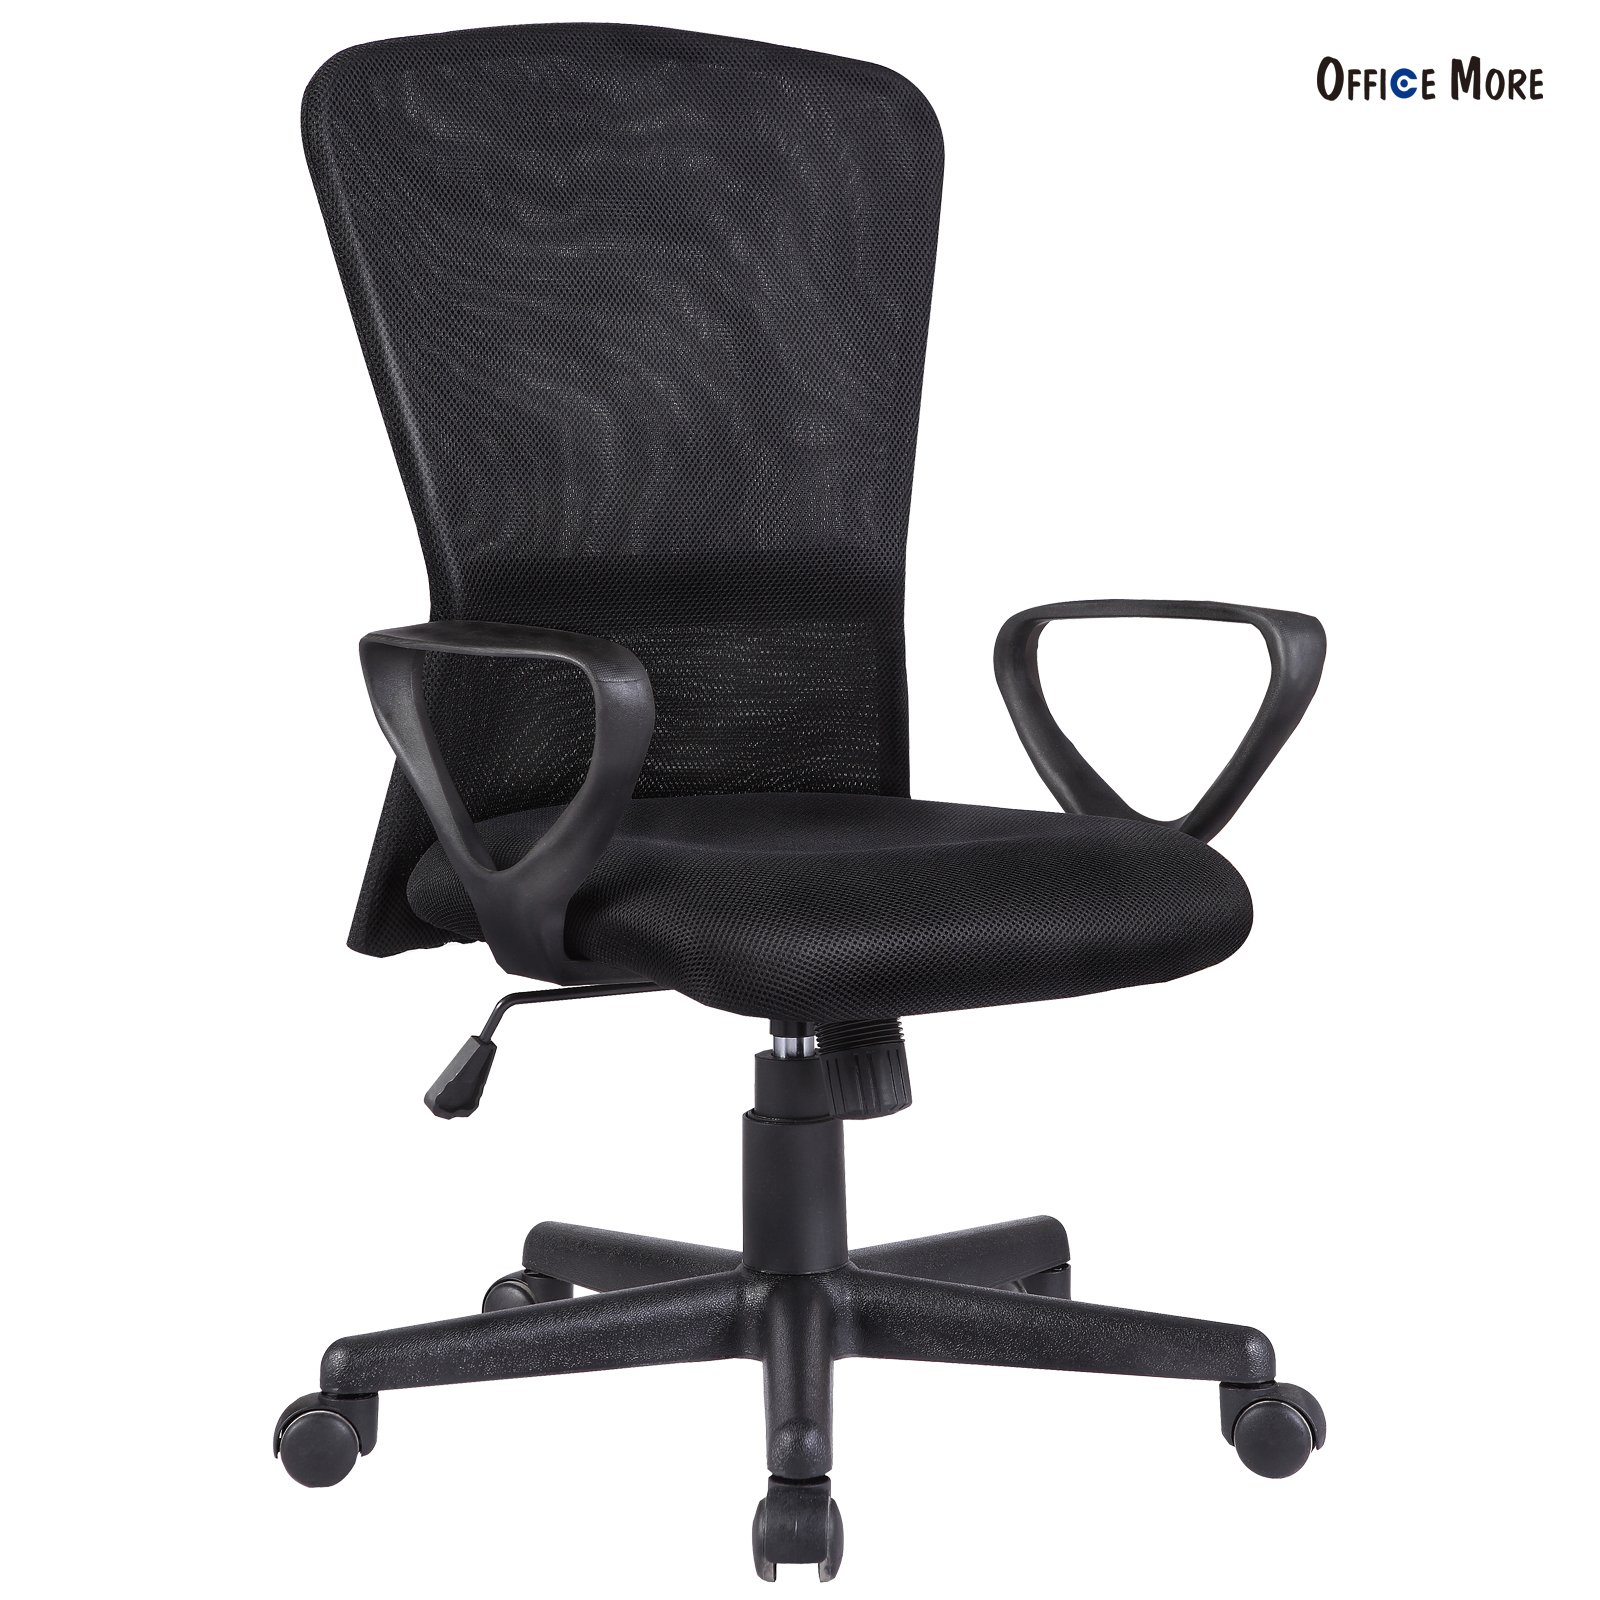 Ergonomic Mesh Chair For Office Computer Desk Black Chair With Back Armrest